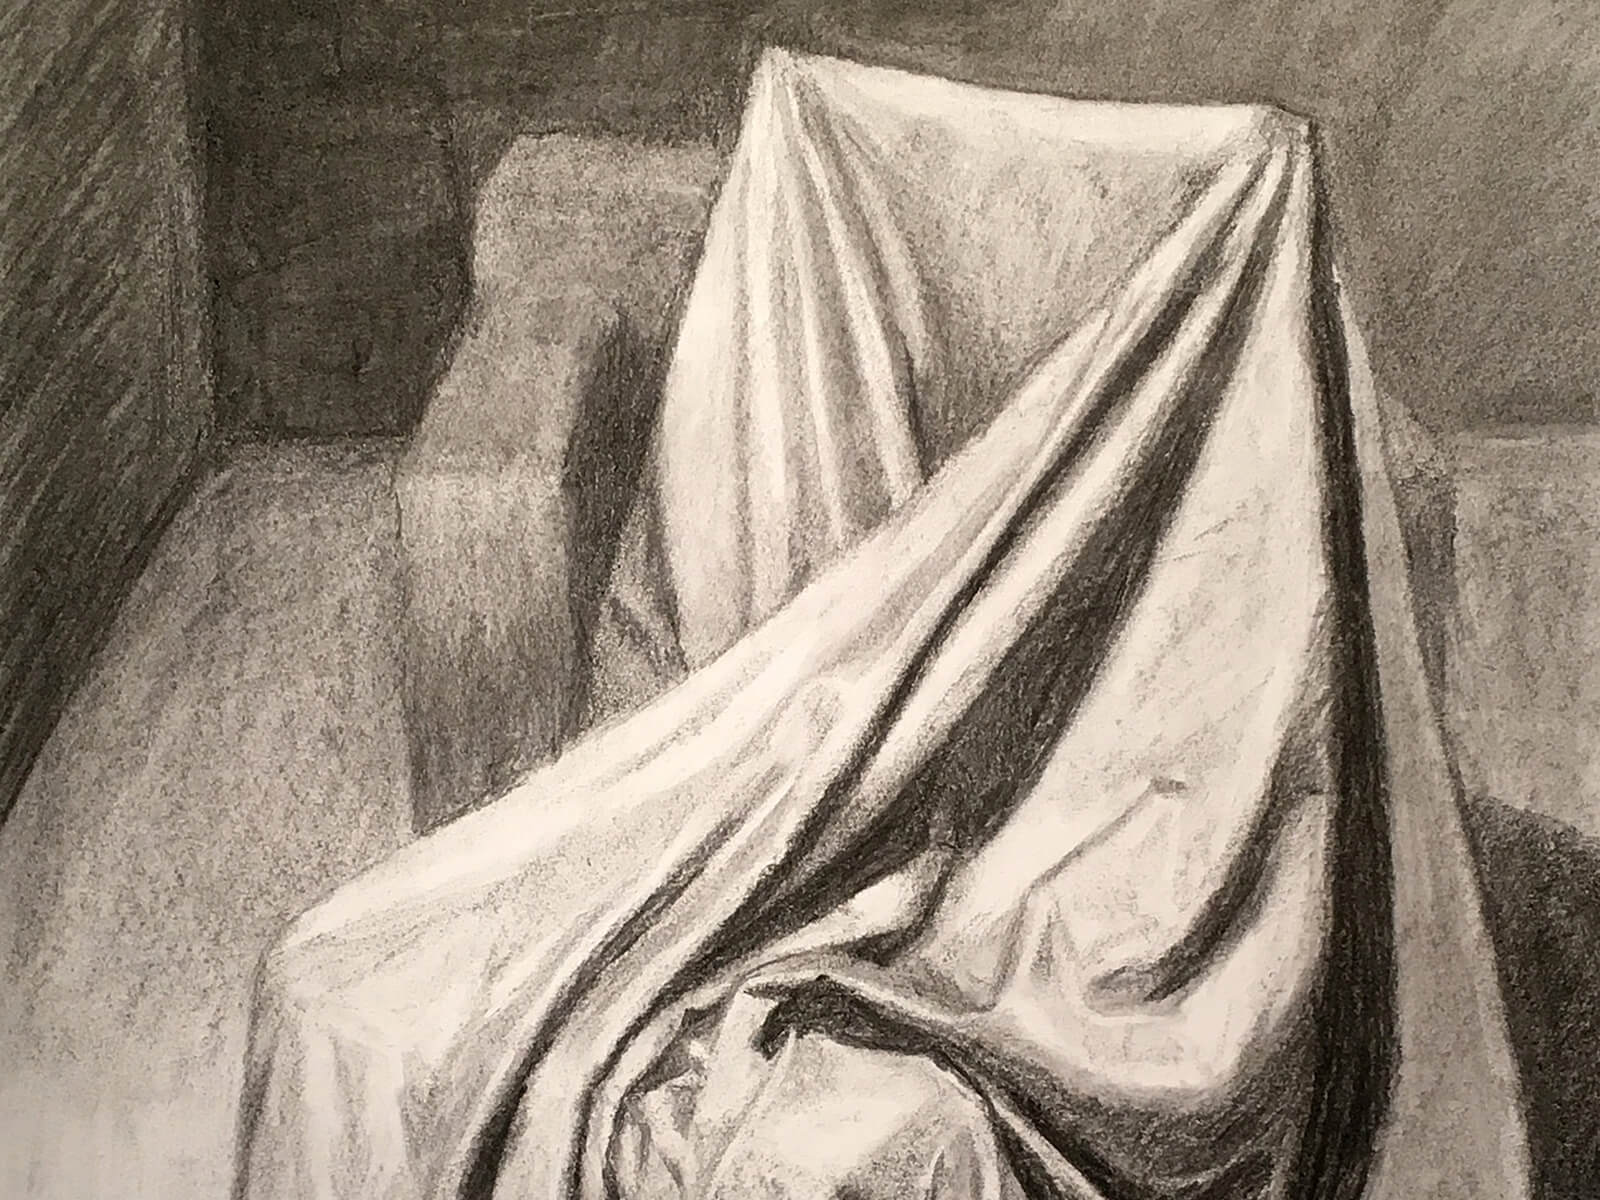 still-life drawing of a chair draped in a sheet